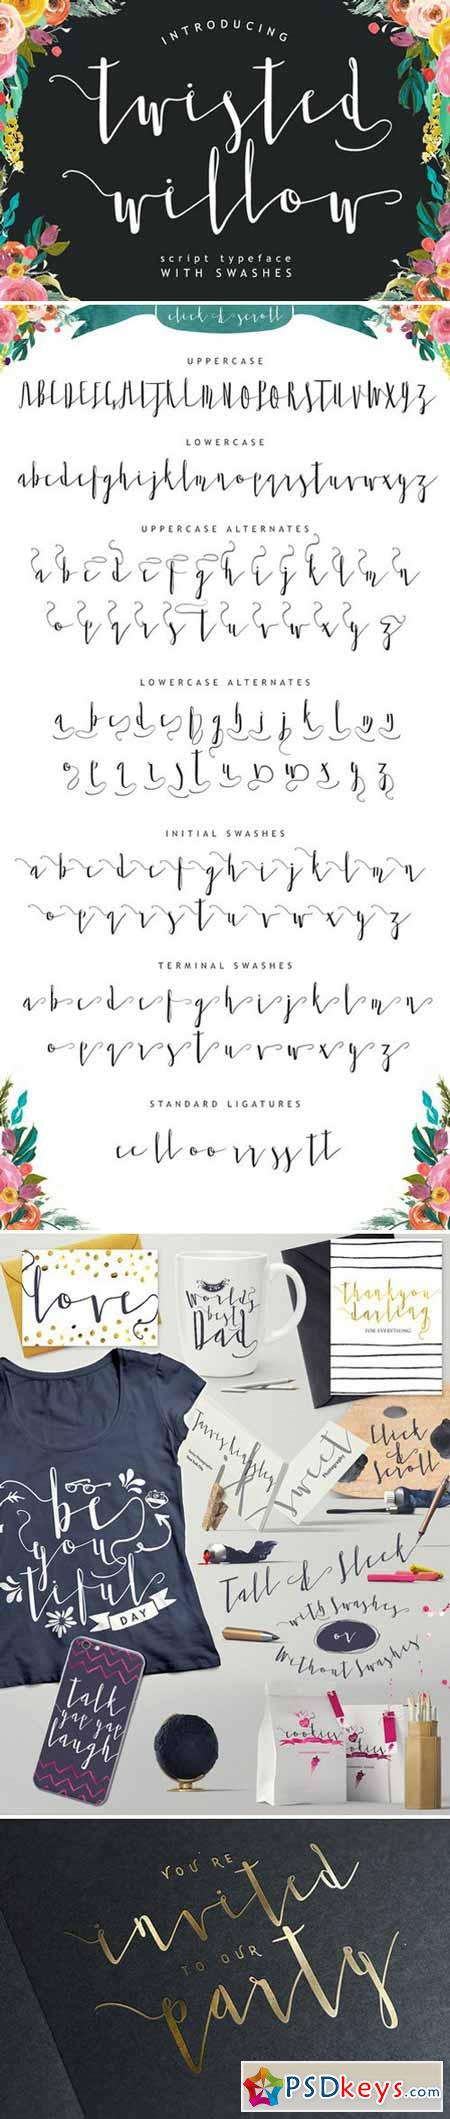 Twisted Willow Typeface Font 352279